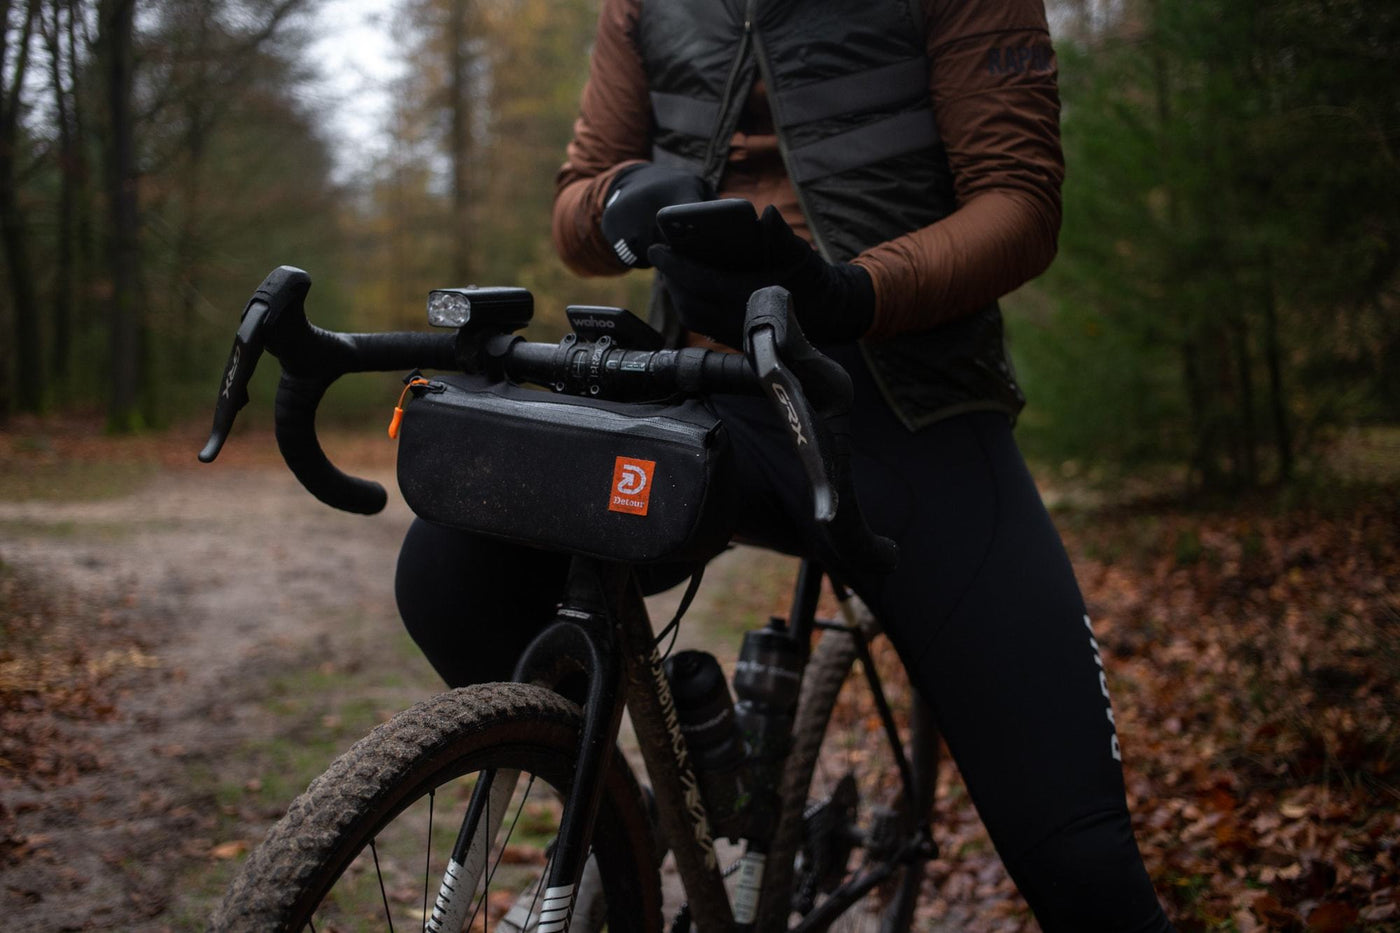 The Detour Studio Glove Box is a handlebar bag perfect for gravel bikes offroad riding for offroad adventures